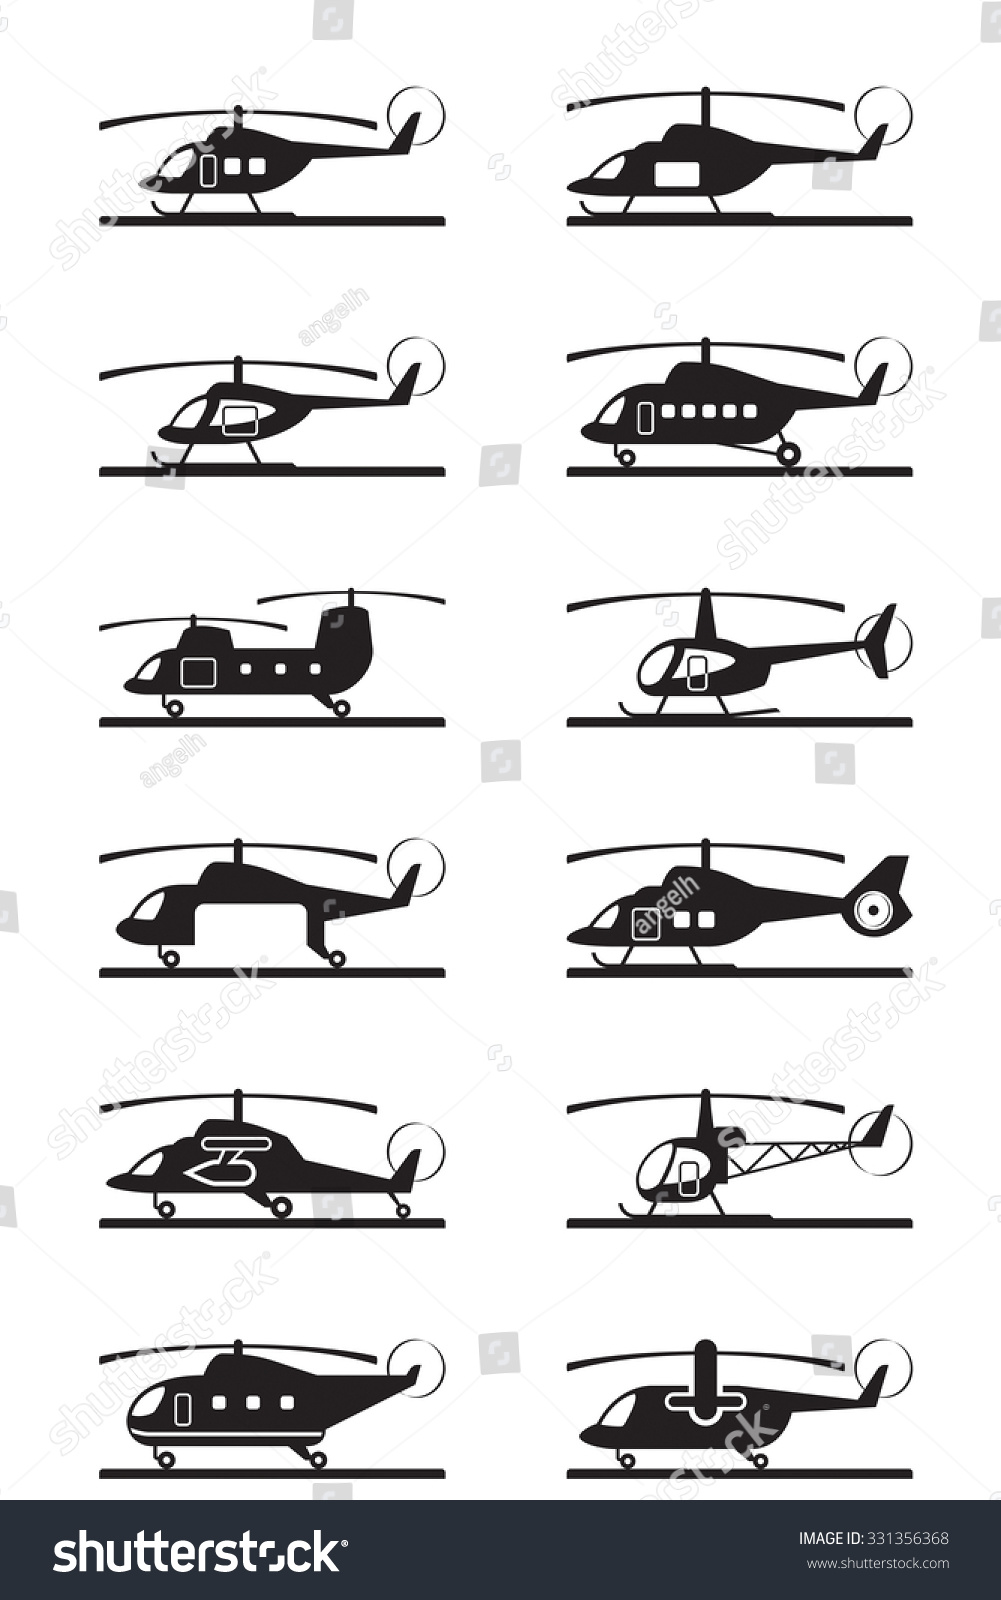 civil helicopters with Stock Vector Different Types Of Helicopters Vector Illustration on 27 Of The Most Eye Popping Cargo Aircraft Ever Built additionally Eurocopter AS 532 Cougar likewise H175 36 as well Om Atr Air Transport Europe Bell 429 furthermore Watch.